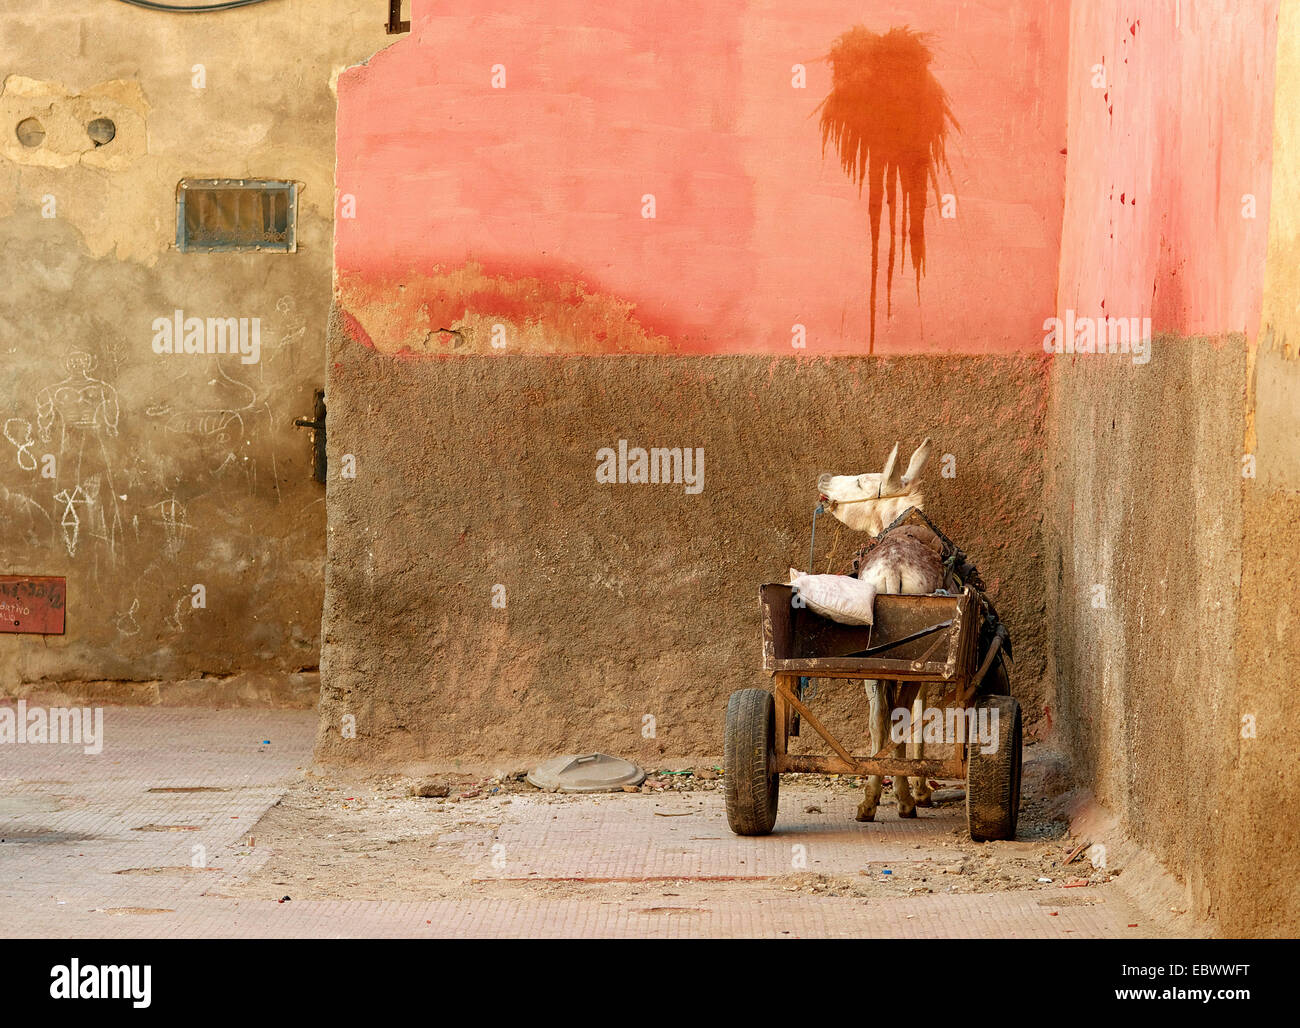 donkey with cart at souks of marrakesh, Morocco, Marrakesh - Stock Image